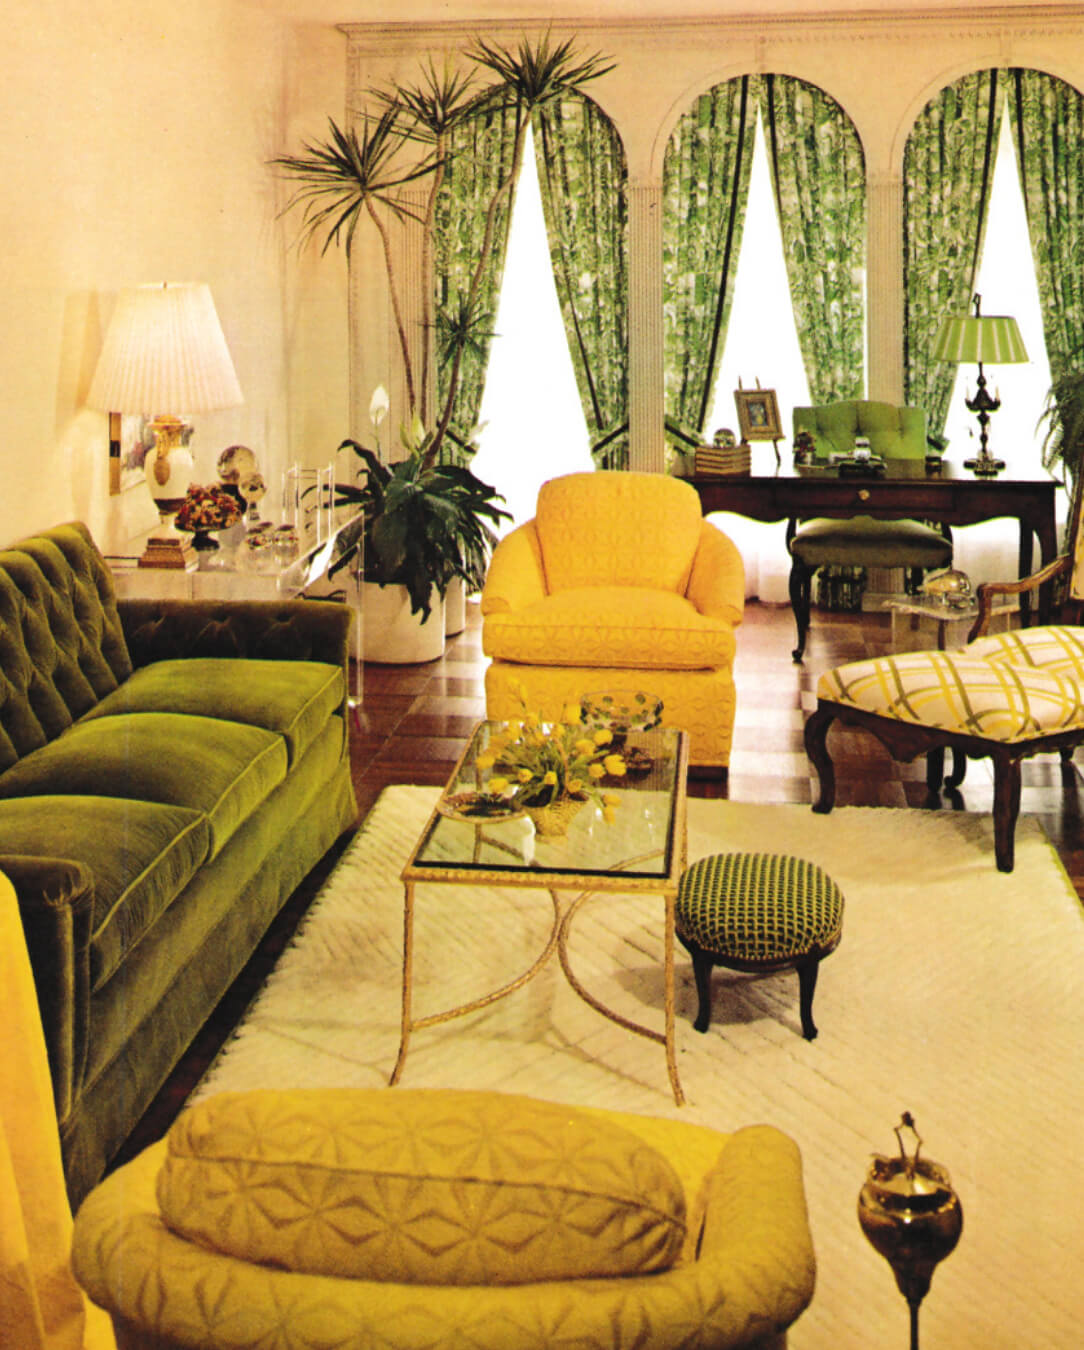 Get Inspired By This 1970s Color Flashback | Freshome.com